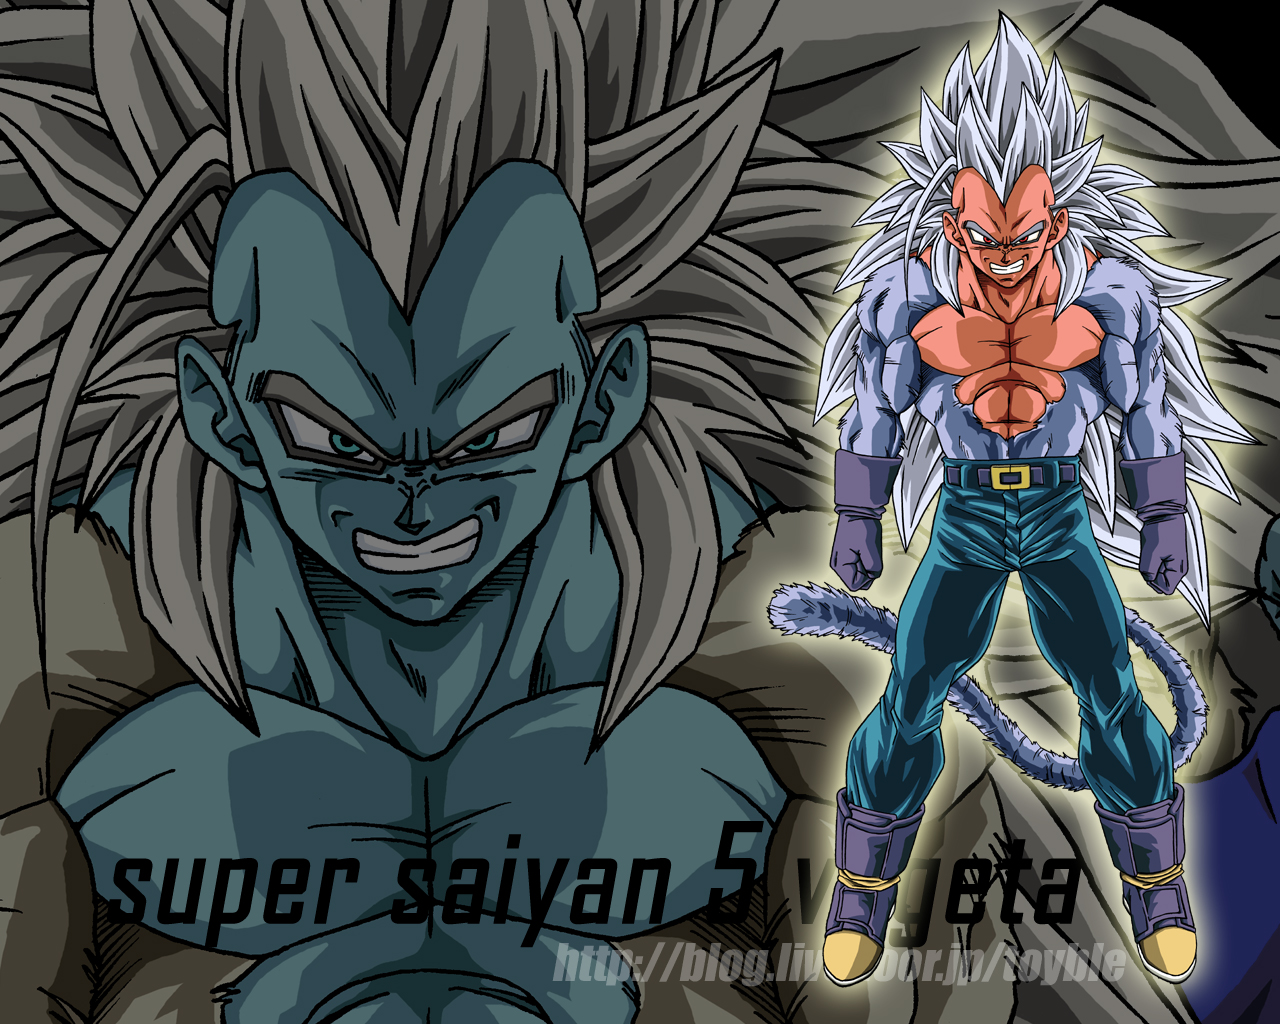 FOTOS DE DRAGON BALL AF - YouTube